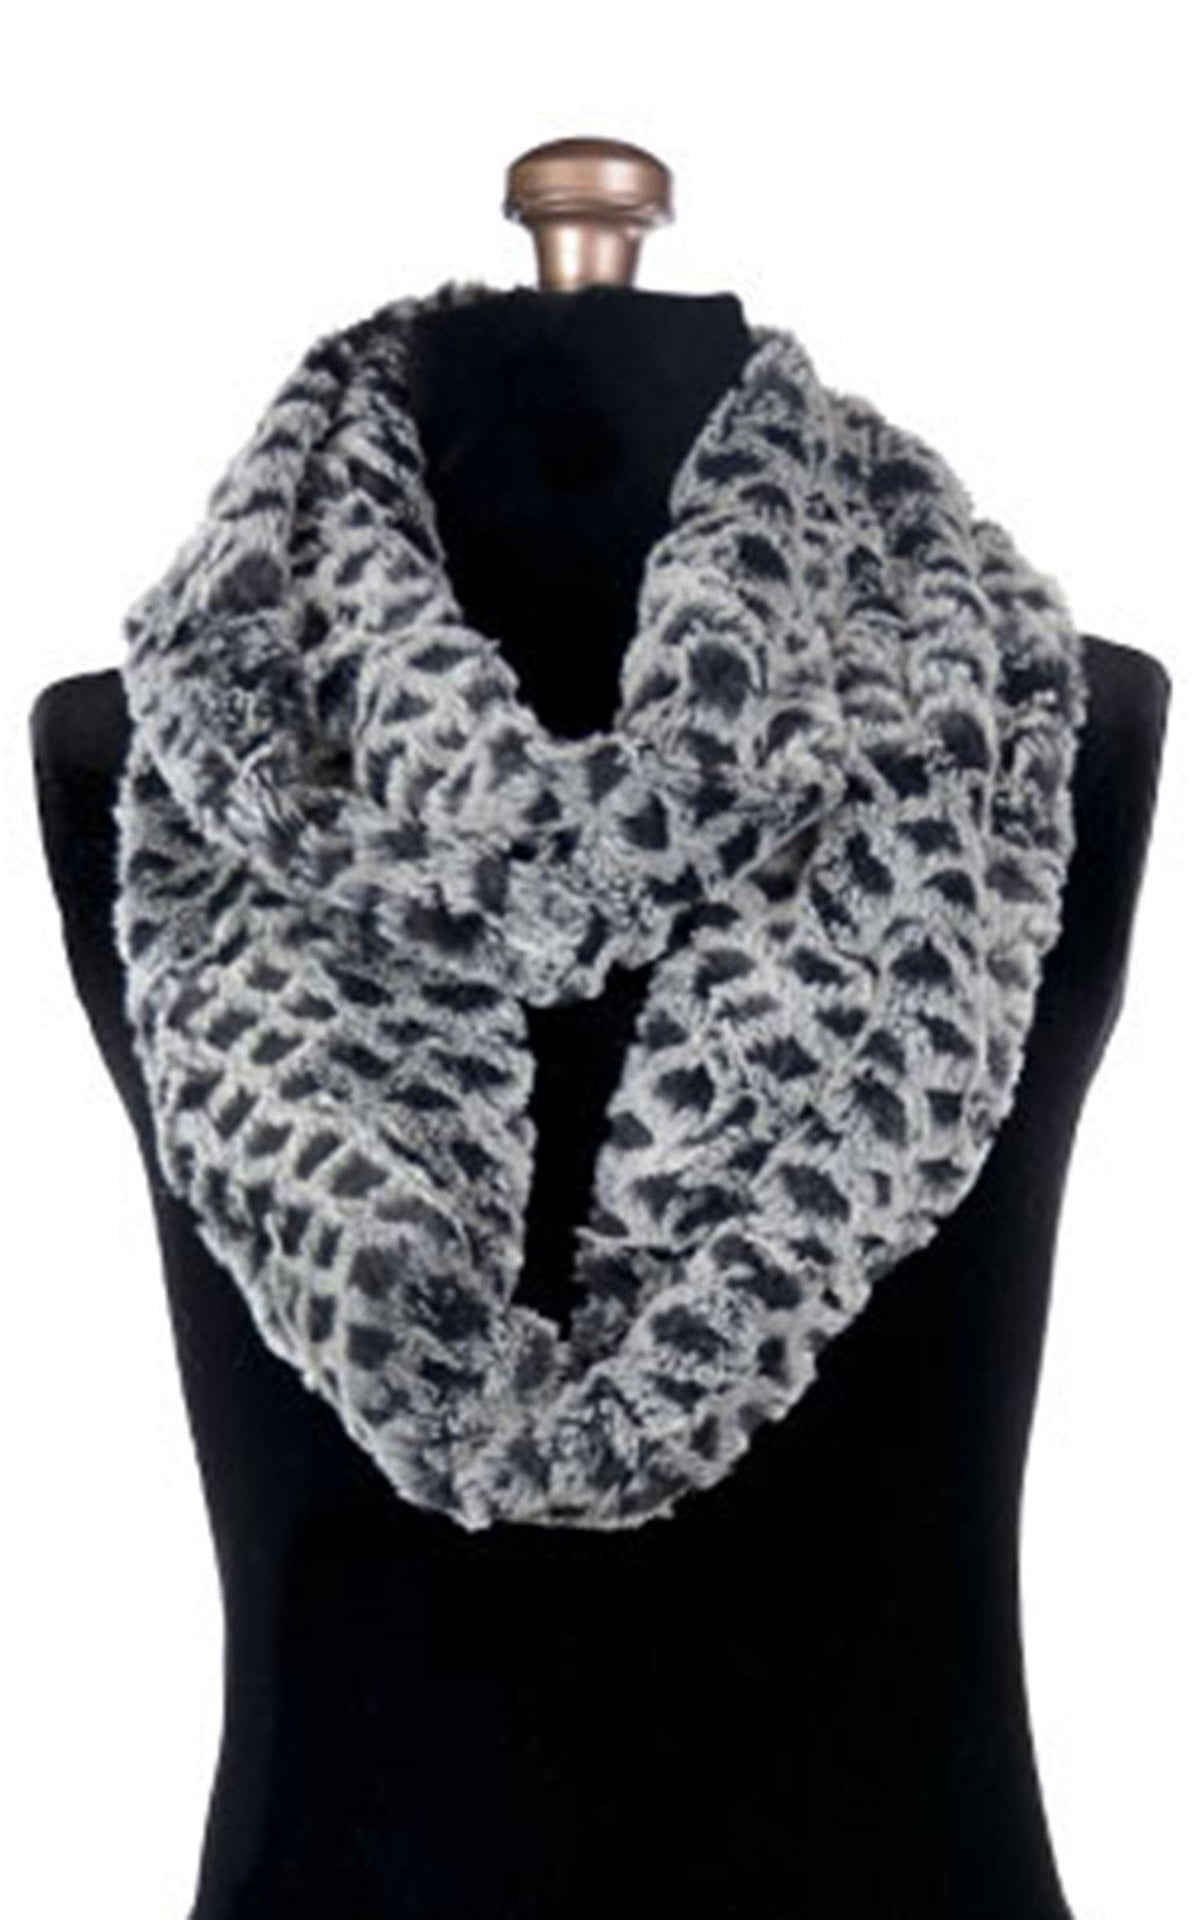 Infinity Scarf - Luxury Faux Fur in Snow Owl